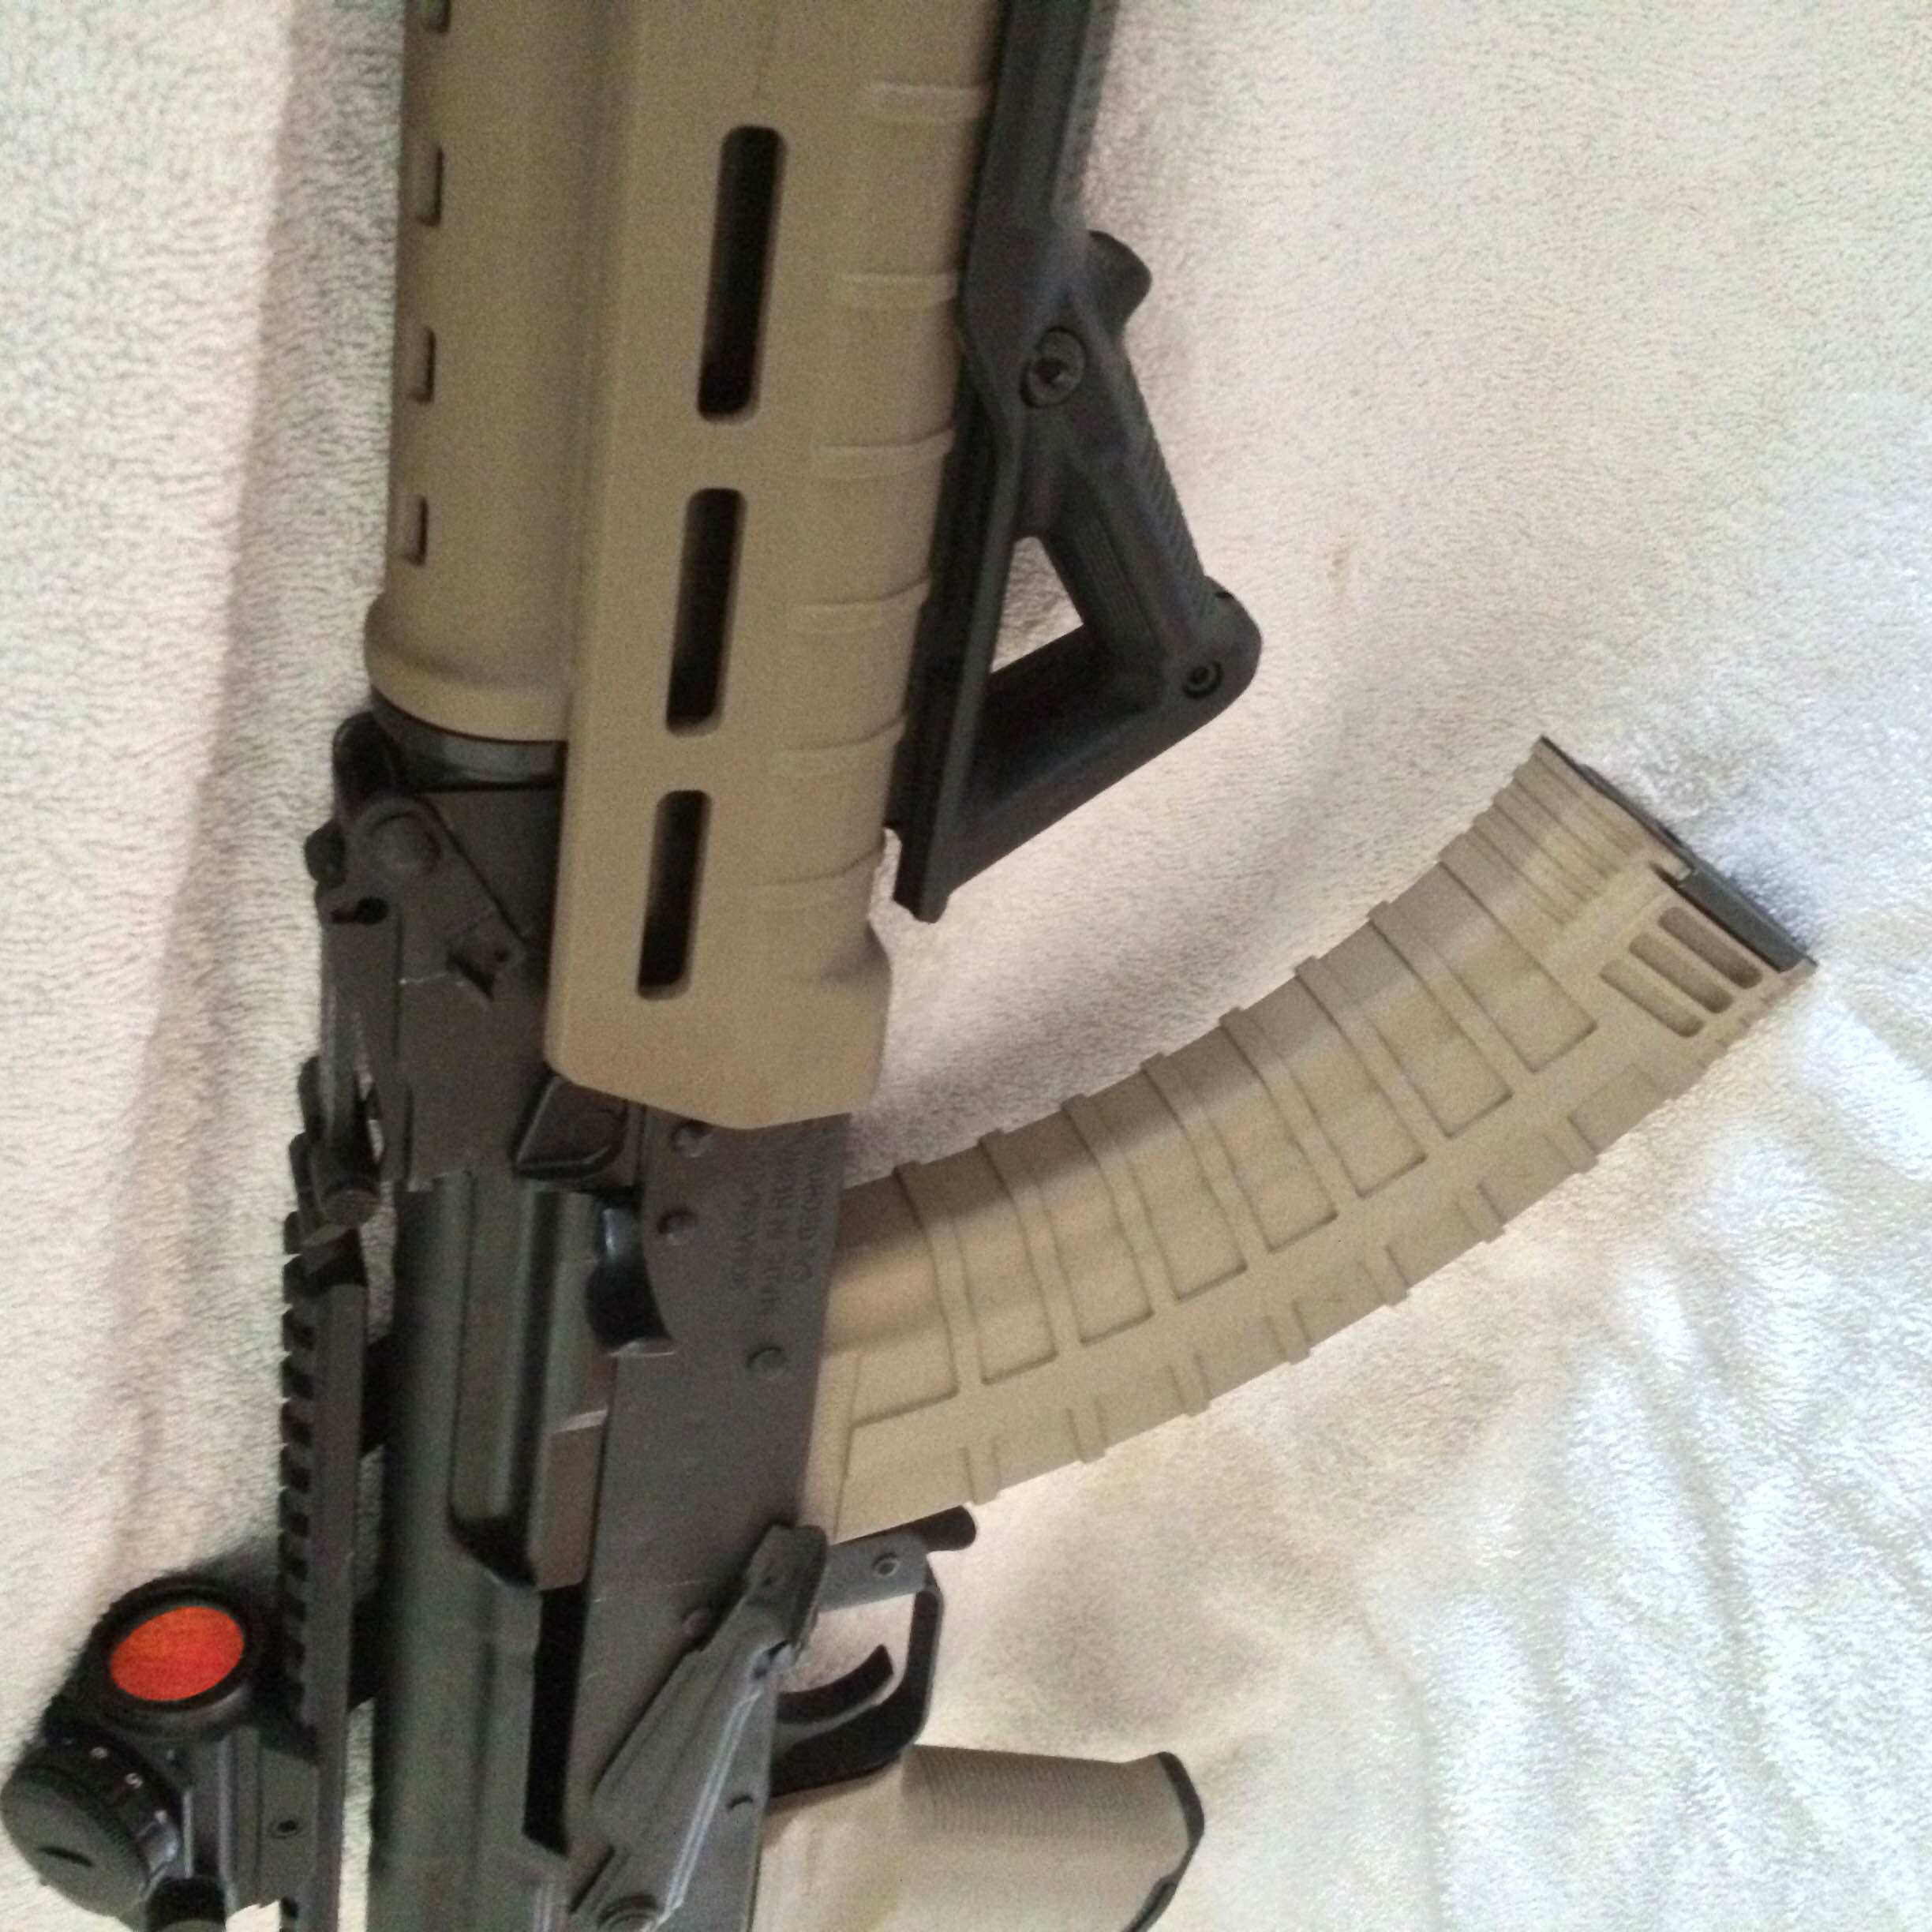 FDE magpul w/ foregrip, Red dot, AR stock | WASR-10 COM